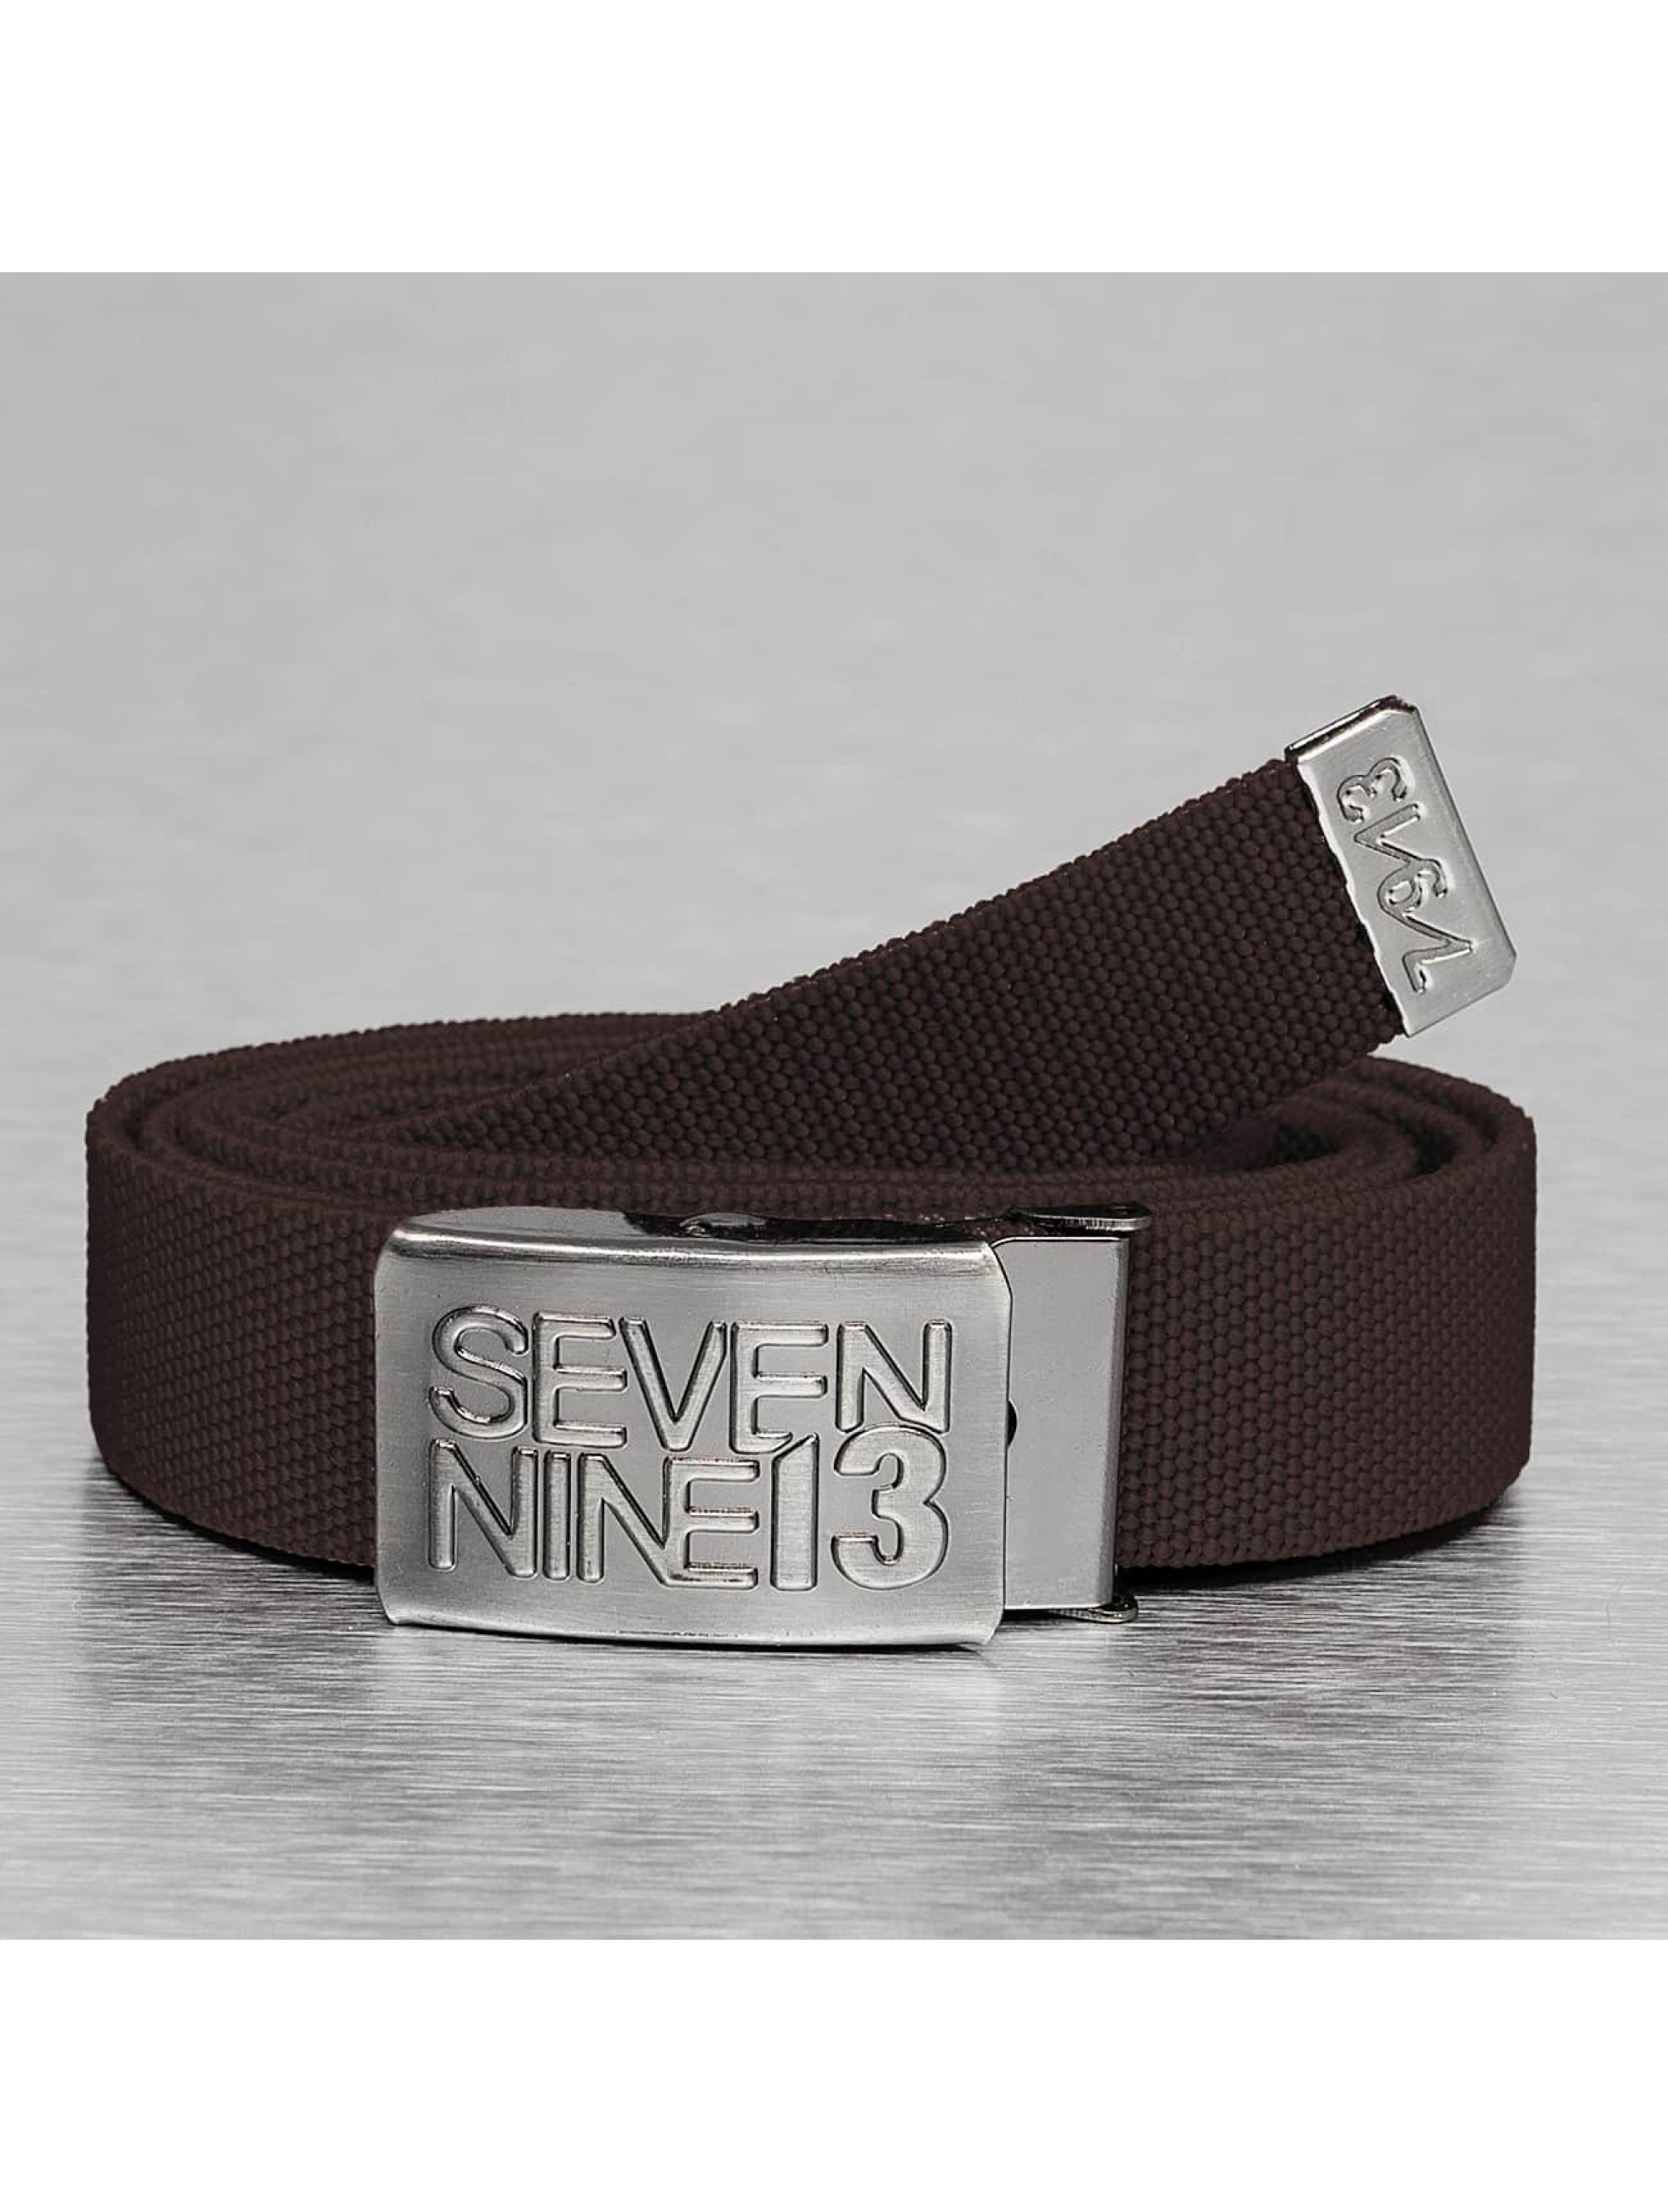 Seven Nine 13 Ceinture Jaws Stretch brun